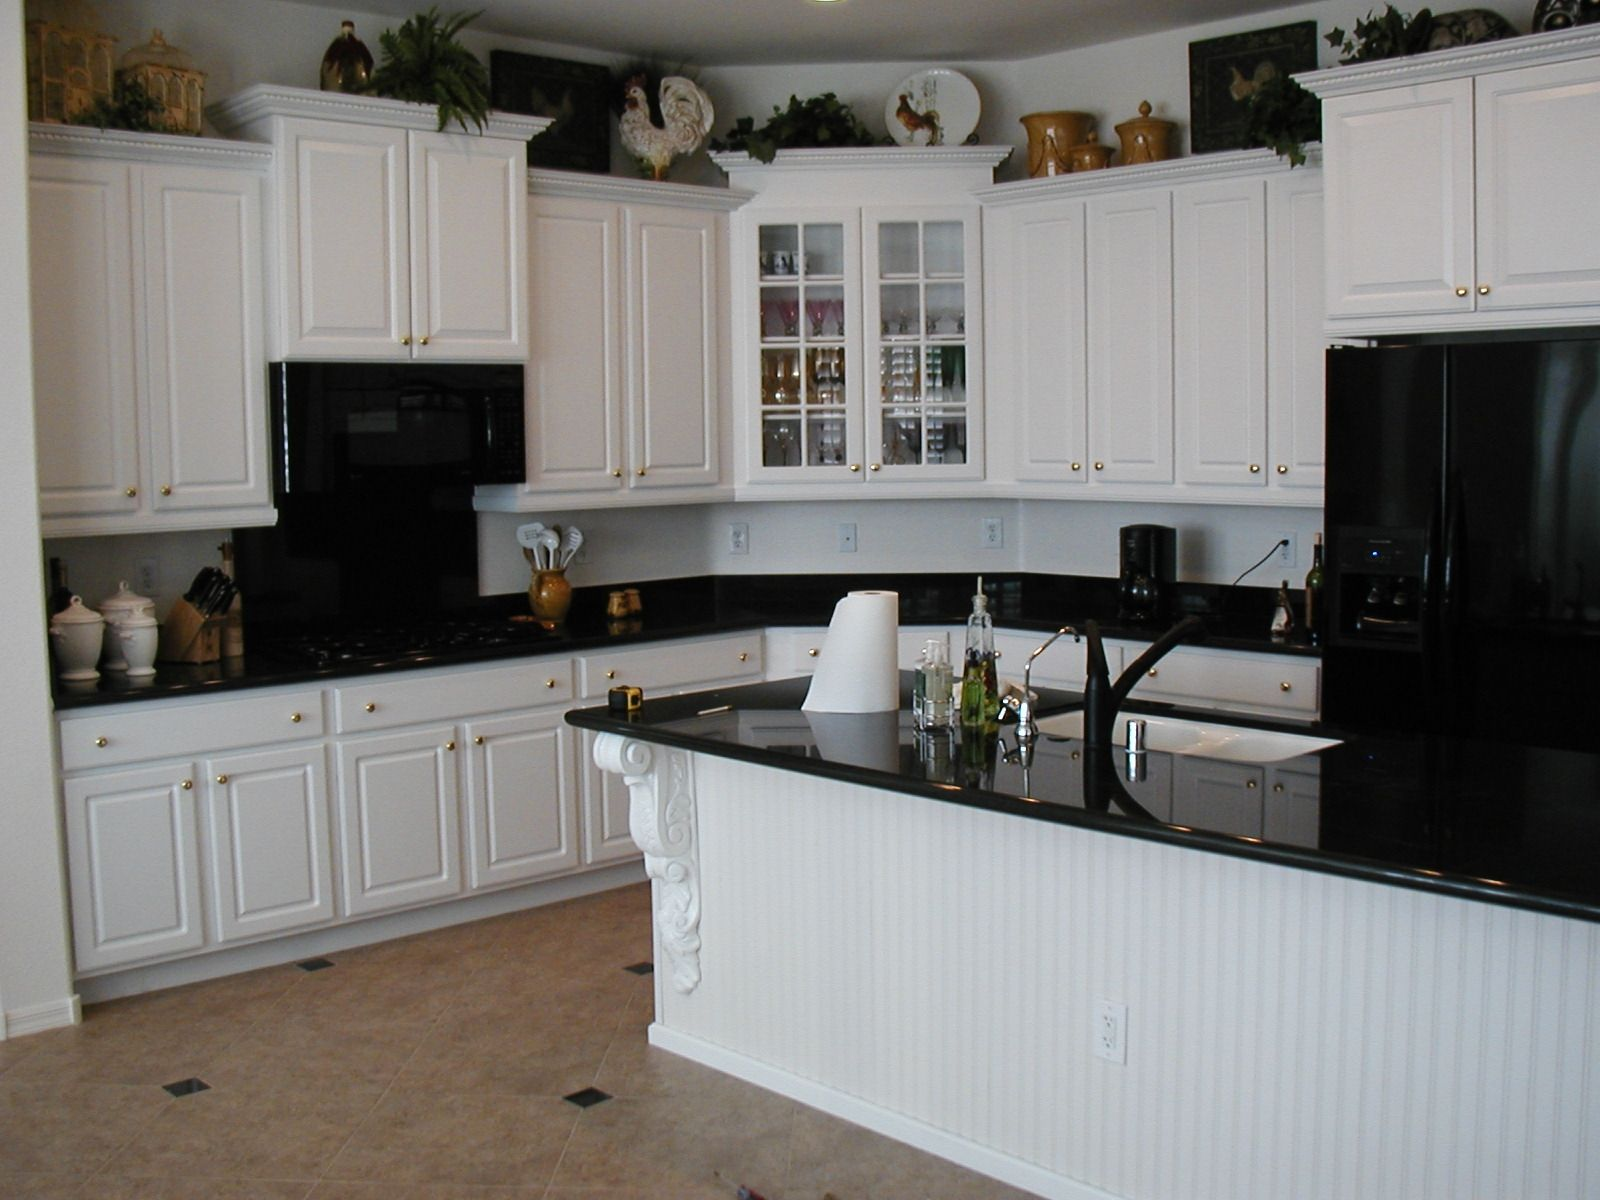 Of White Kitchens Photos Of White Kitchens With Black Appliances And Black